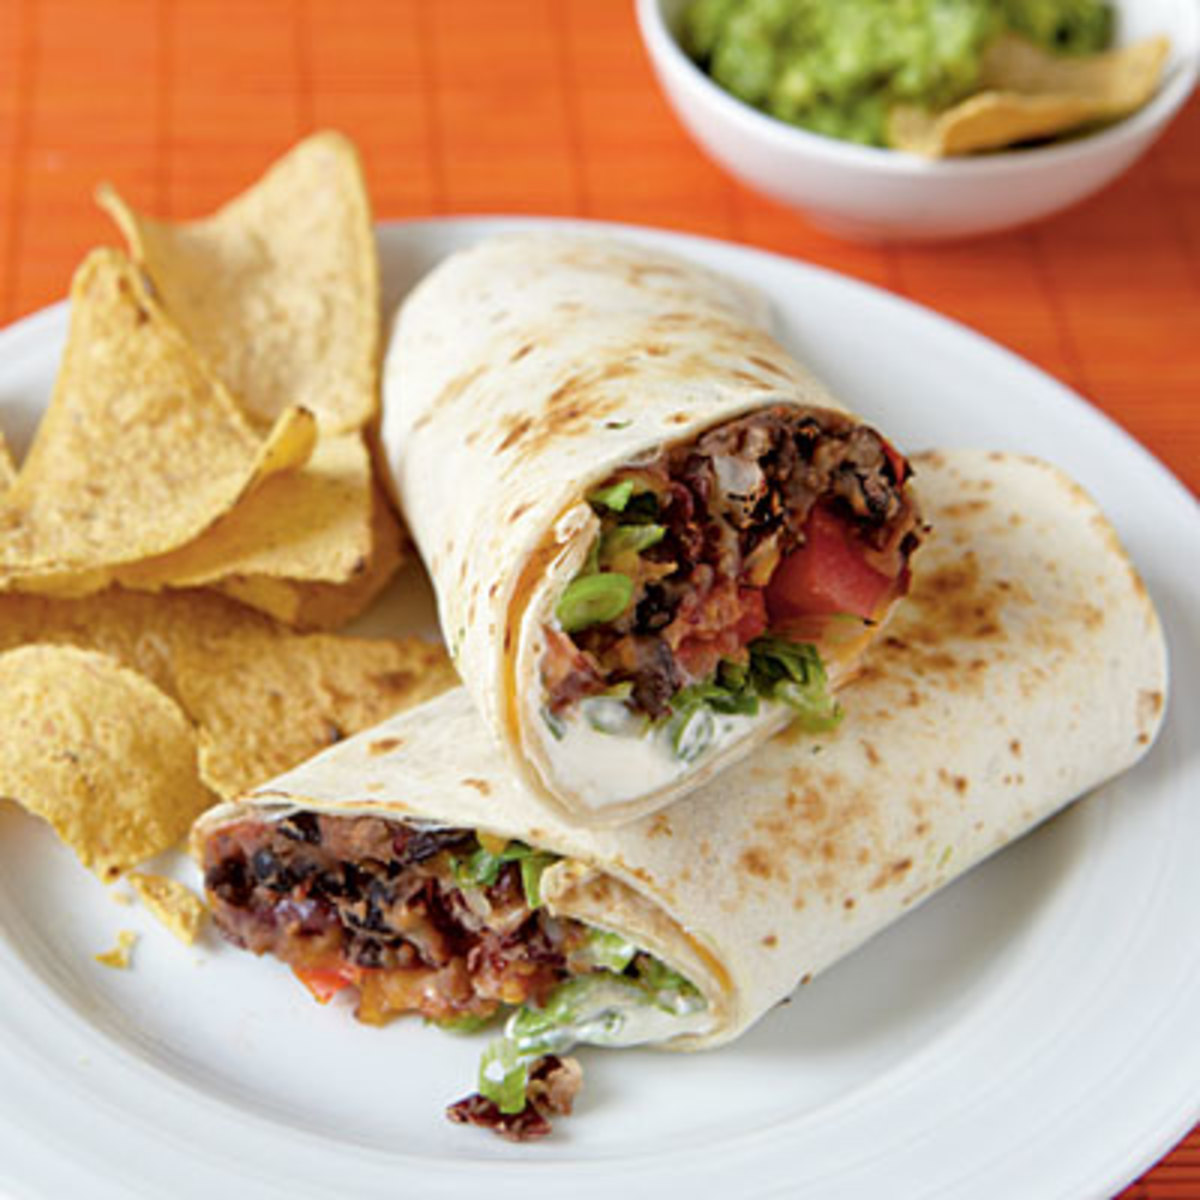 Vegetarian burritos with guacamole.